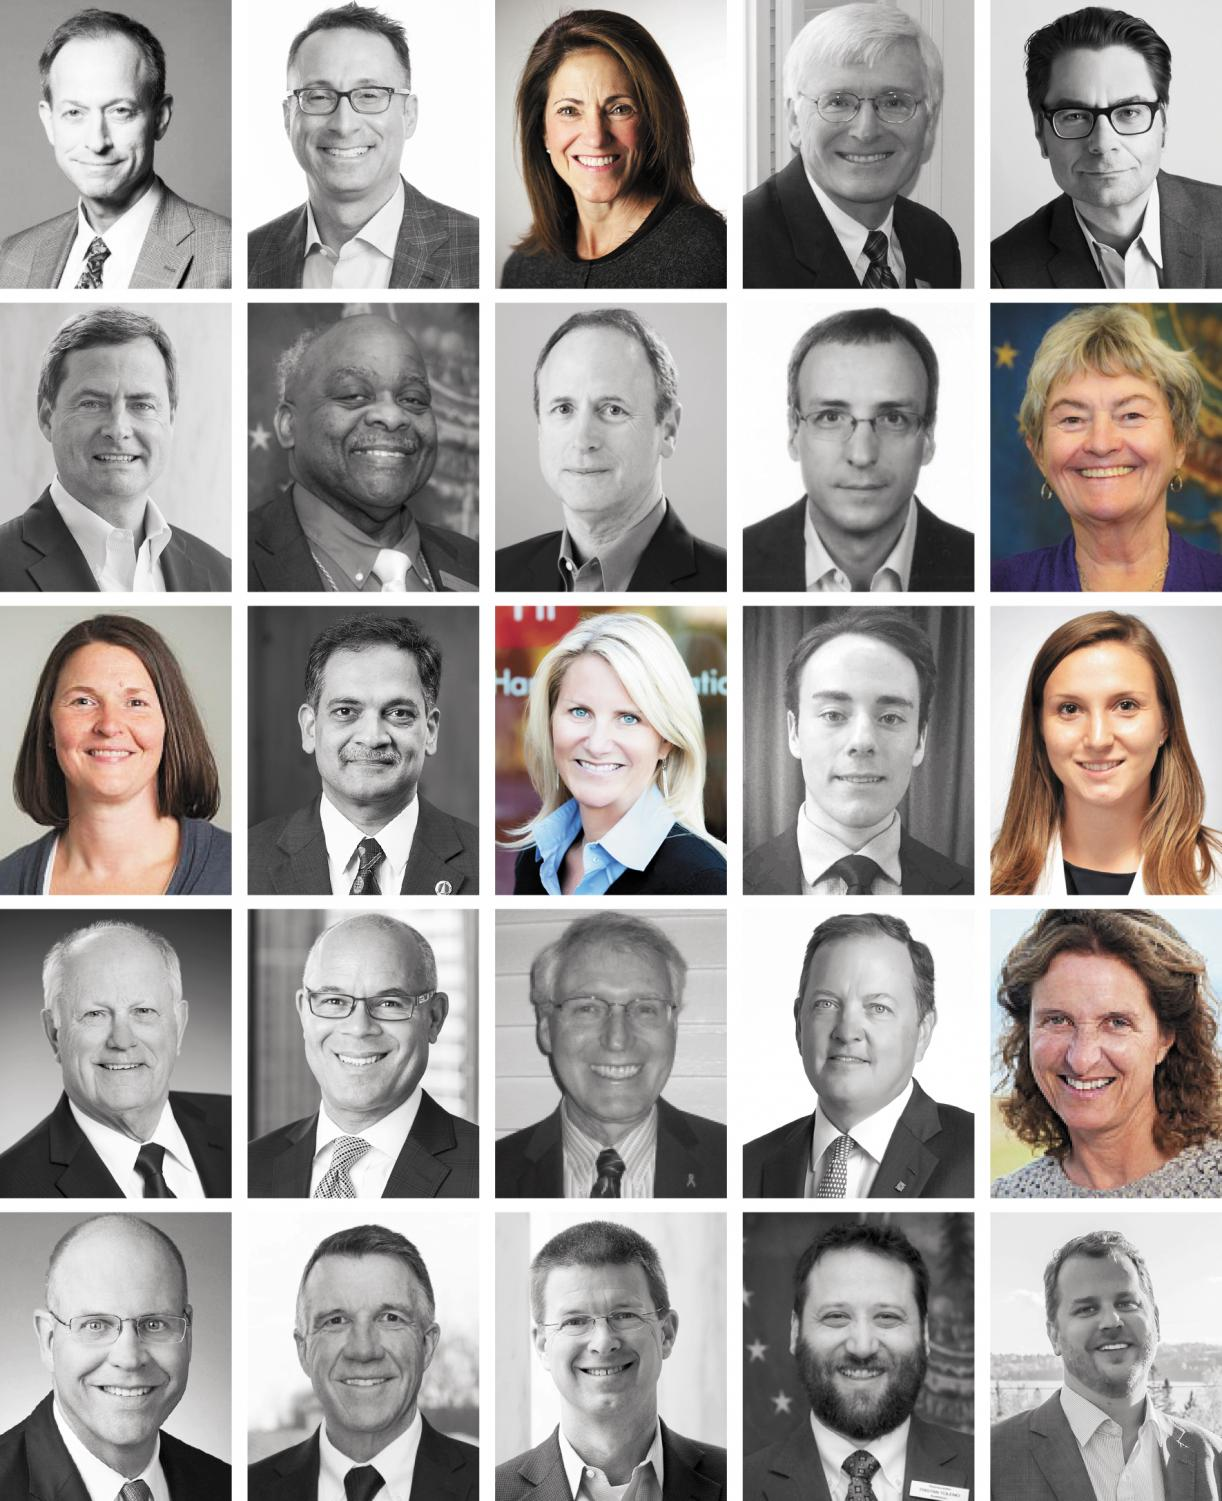 Pictured above are the 25 members of the board of trustees in alphabetical order by last name. The photos of the 19 men on the board are converted to grayscale, leaving only the six women – 24% of the board – in color.